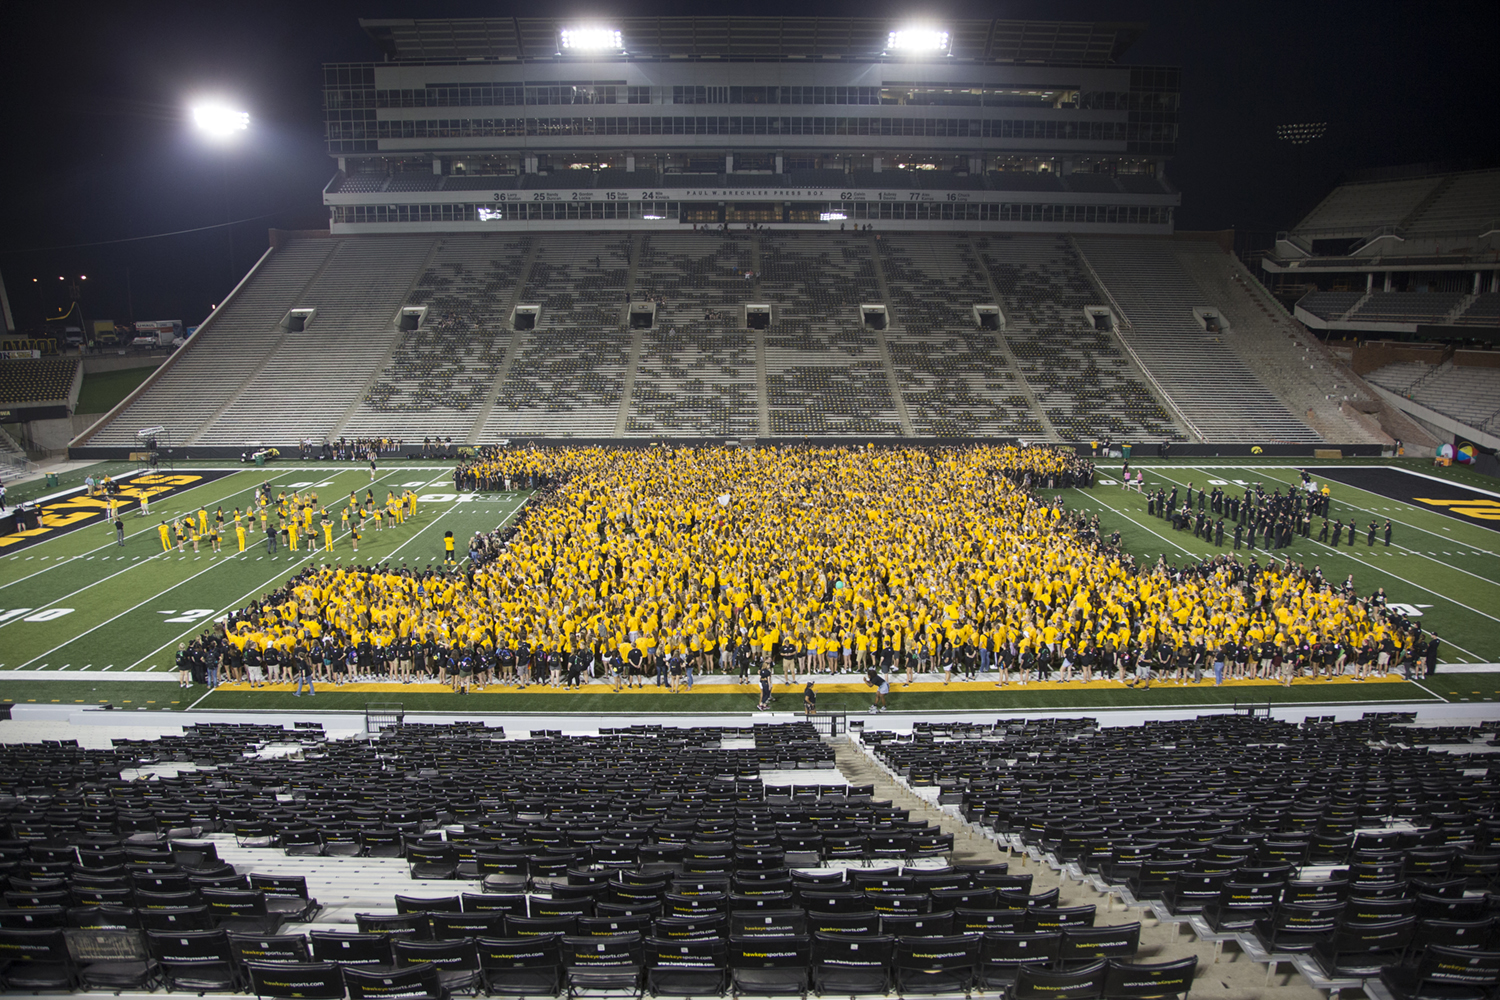 Freshmen form an I during Kickoff at Kinnick in Kinnick Stadium located in Iowa City on Aug. 17, 2018. During this On Iowa event, students were able to rush the field, listen to music, learn the fight song, and watch fireworks.